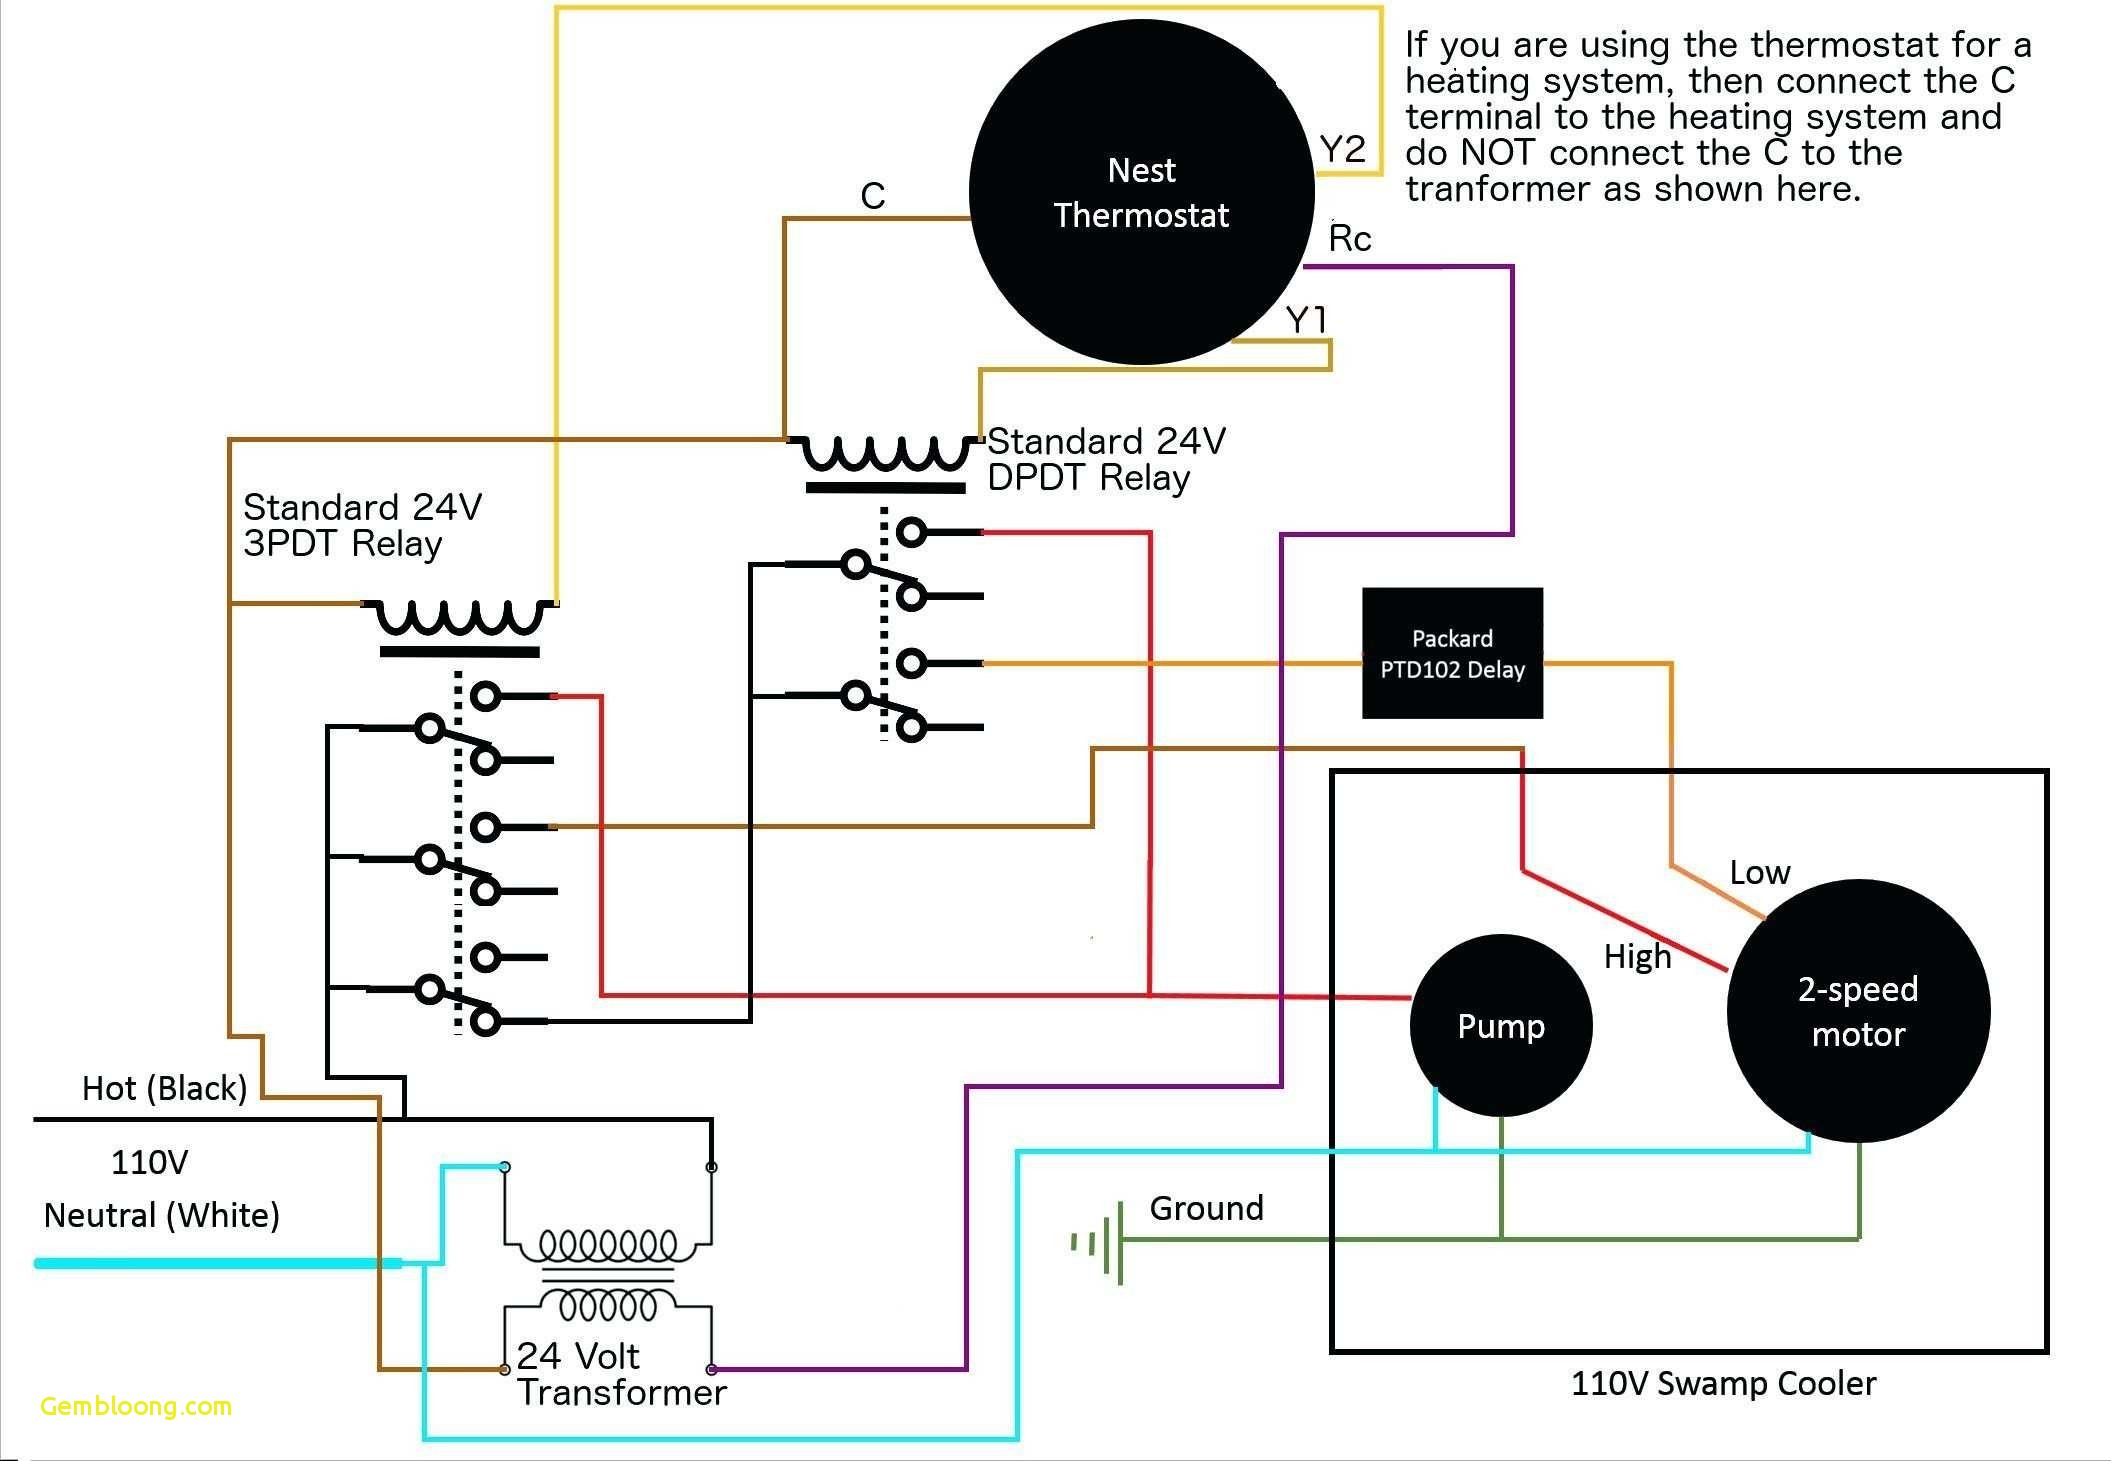 Harley Davidson Ceiling Fan Lovely Wiring Diagram For Emerson - Harley Davidson Wiring Diagram Download